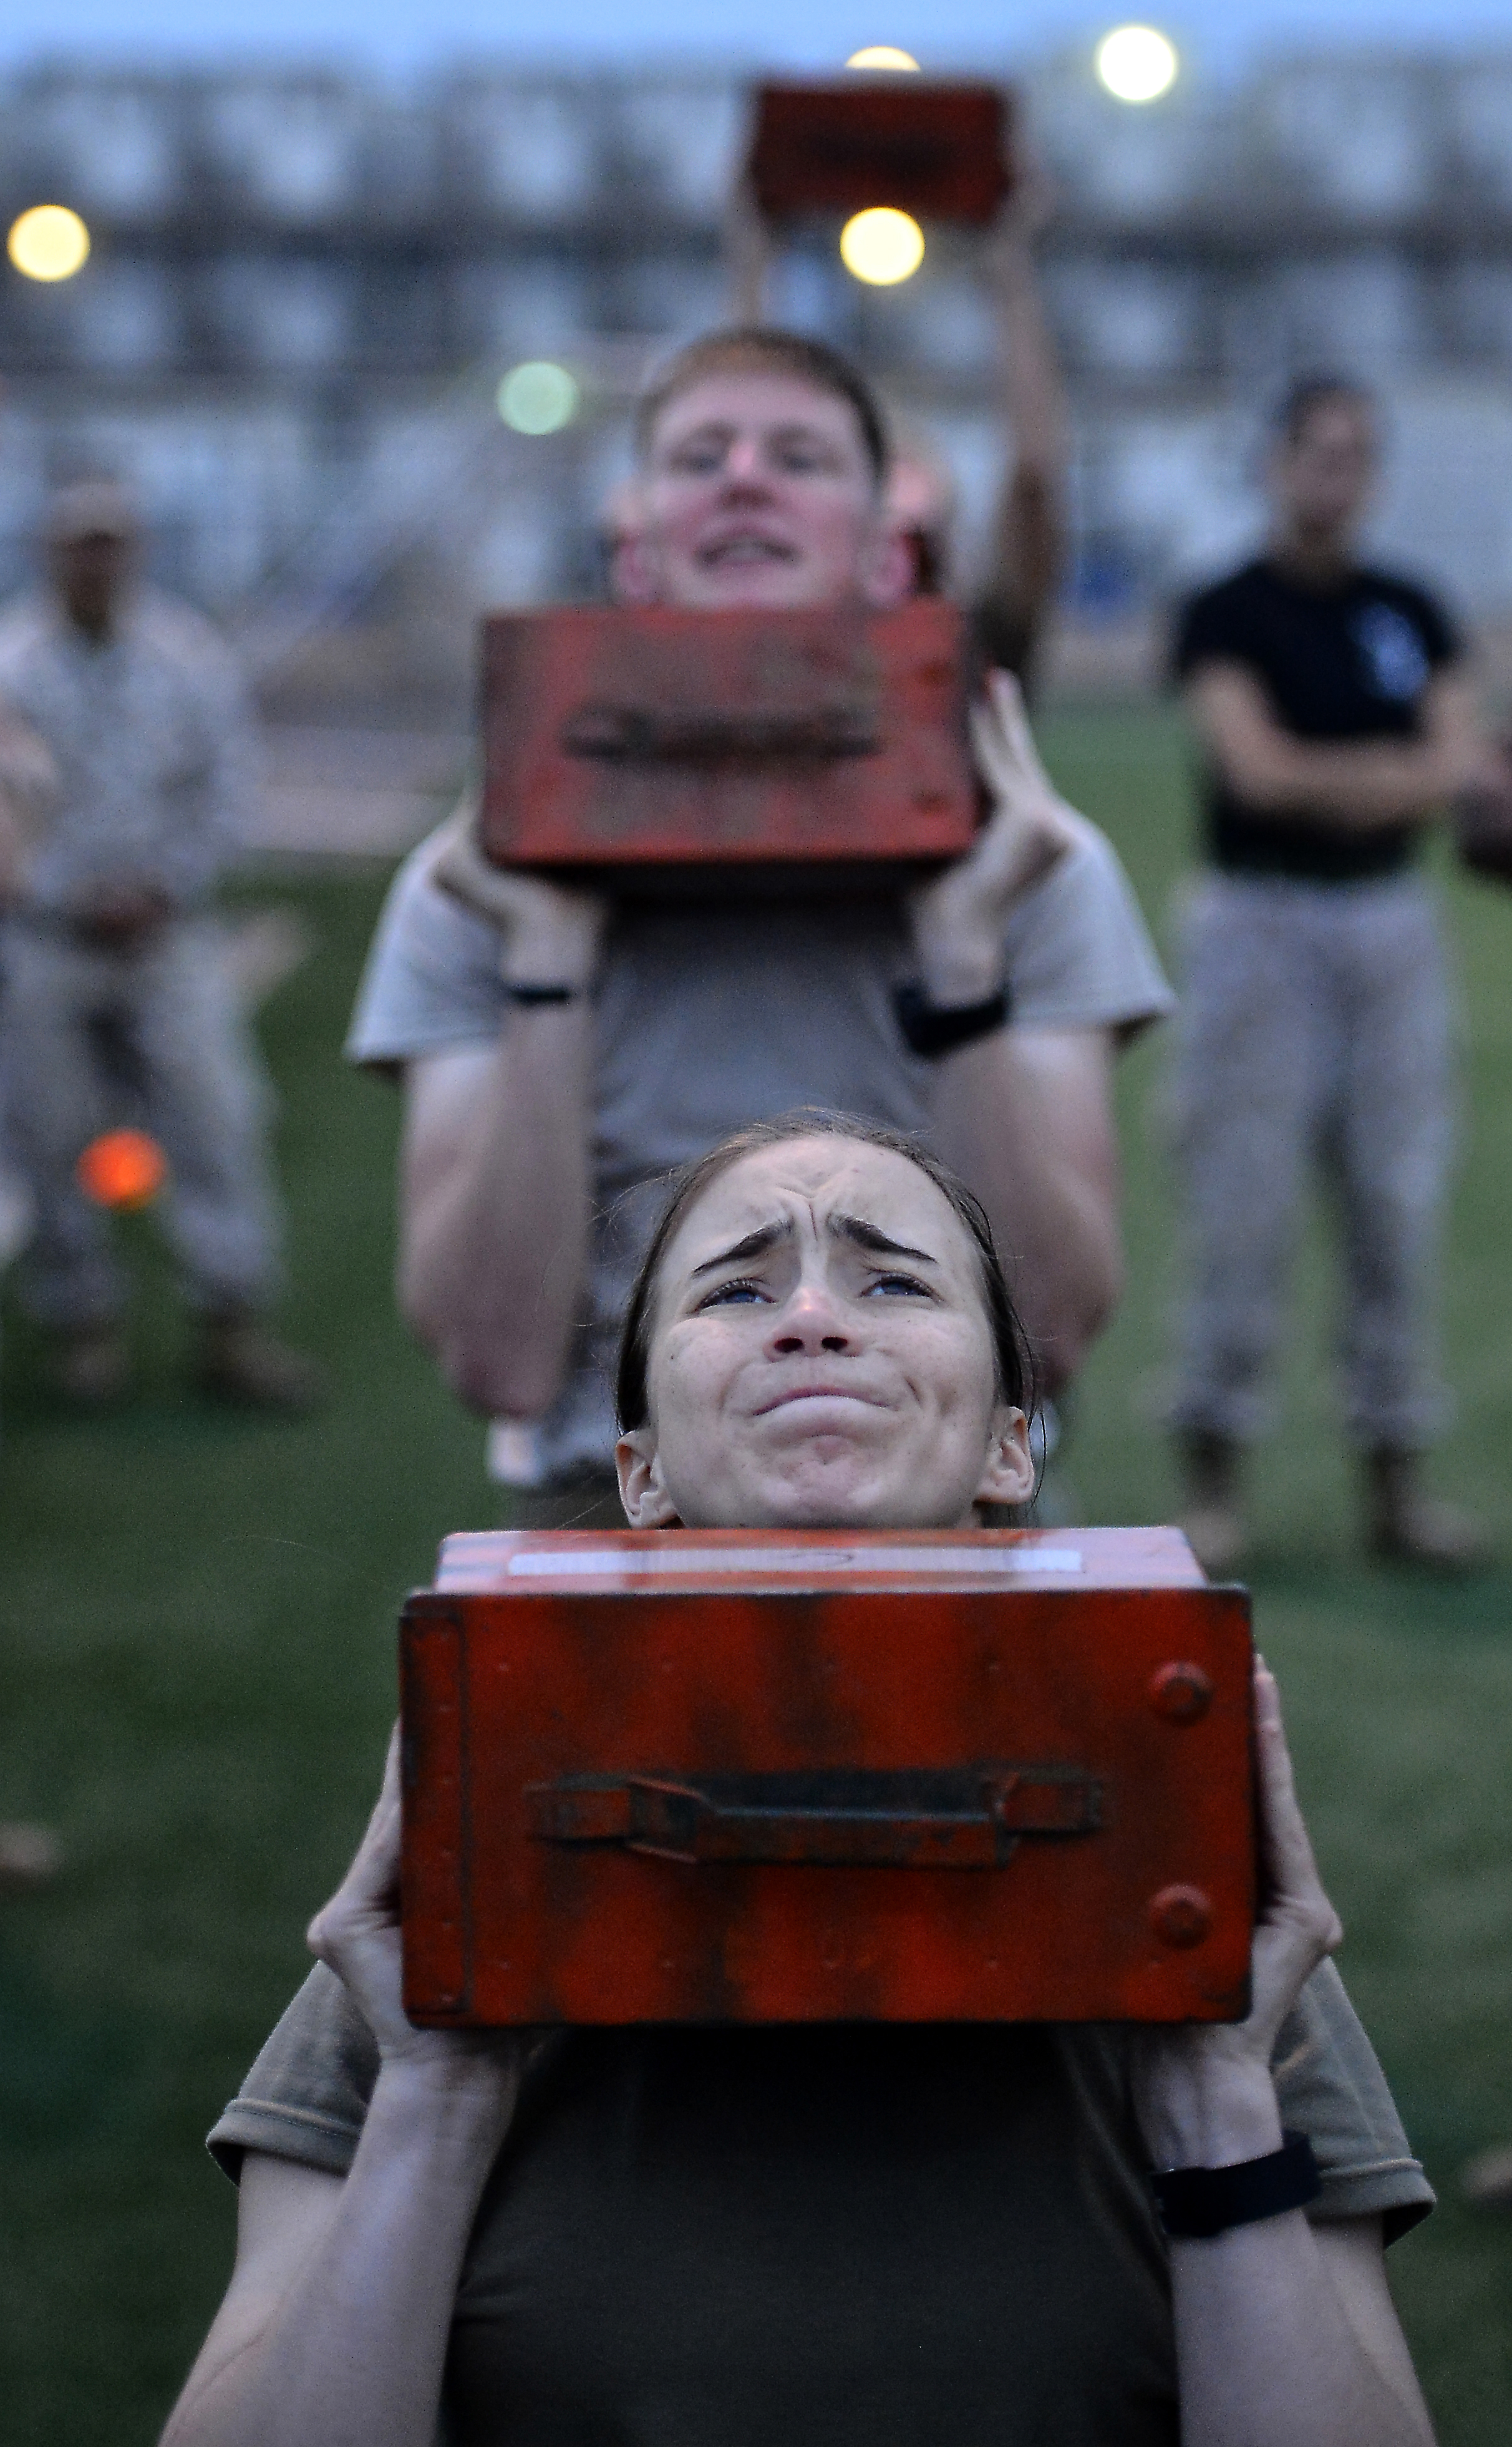 U.S. Army Spc. Jeileigh Bouchard, Joint Corporals Leadership Development Course student, lifts a weighted ammunition can during a combat fitness test March 8, 2016 at Camp Lemonnier, Djibouti. In addition to time spent in the classroom, students also participated in daily physical training sessions that included the Marine Corps physical training test and combat fitness test. (U.S. Air Force photo by Tech. Sgt. Dan DeCook)